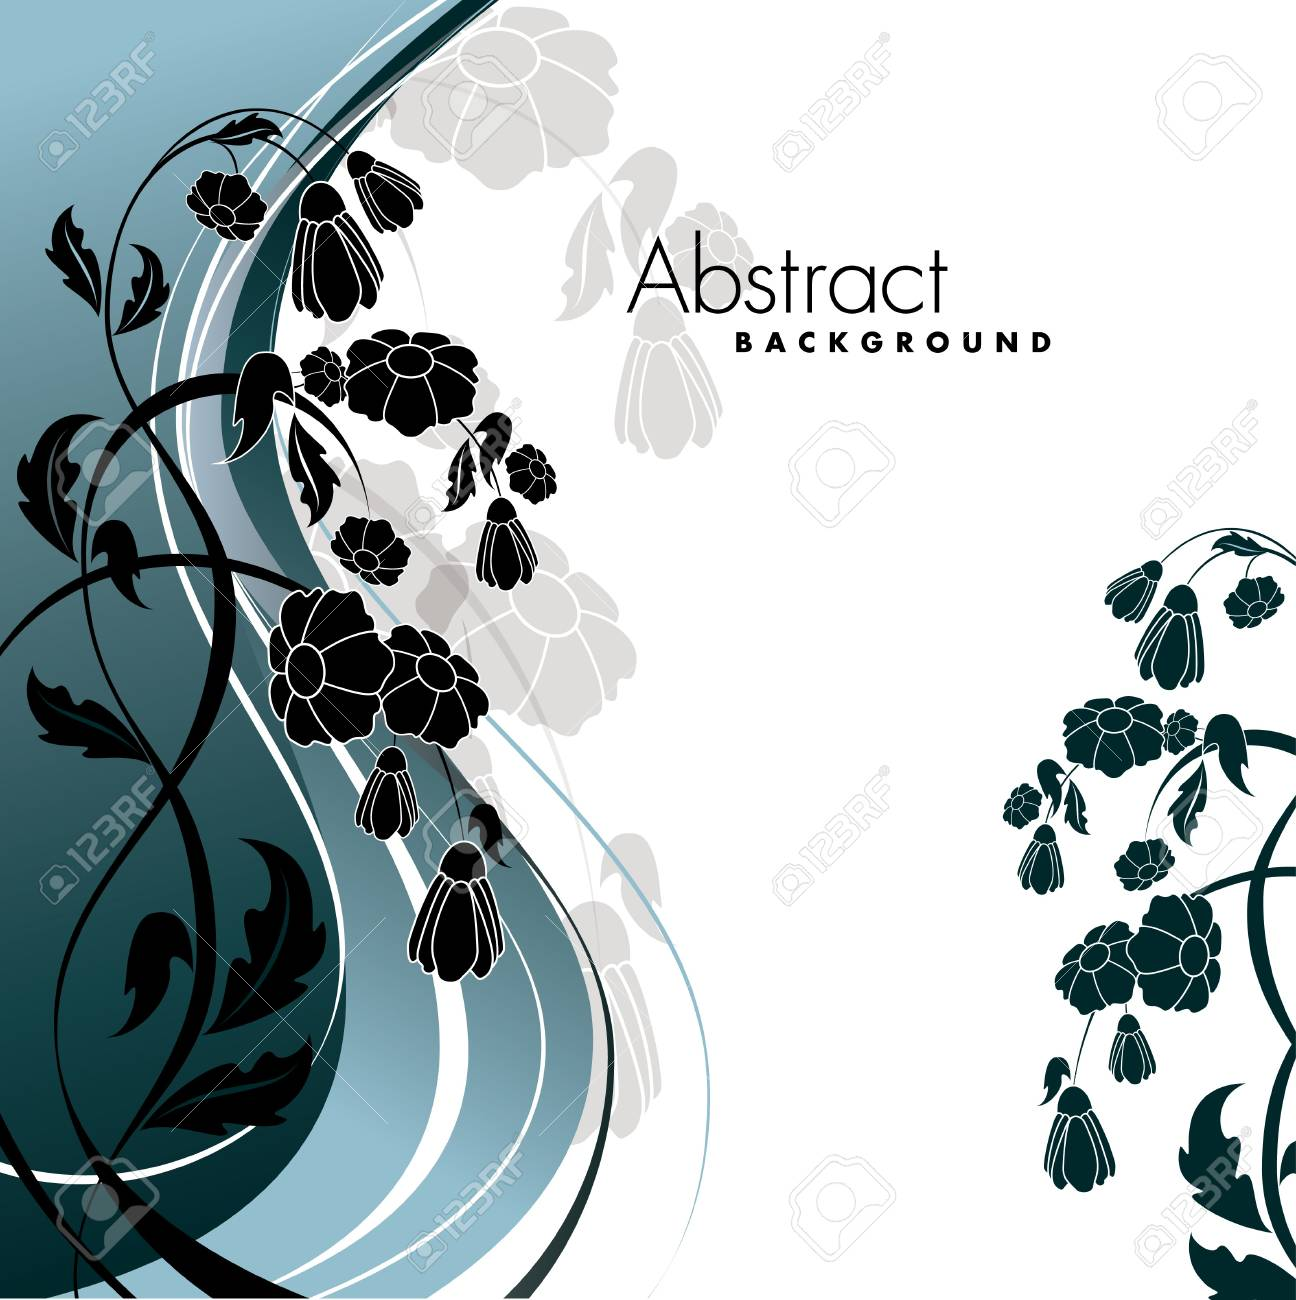 Floral Background Stock Vector - 14235172